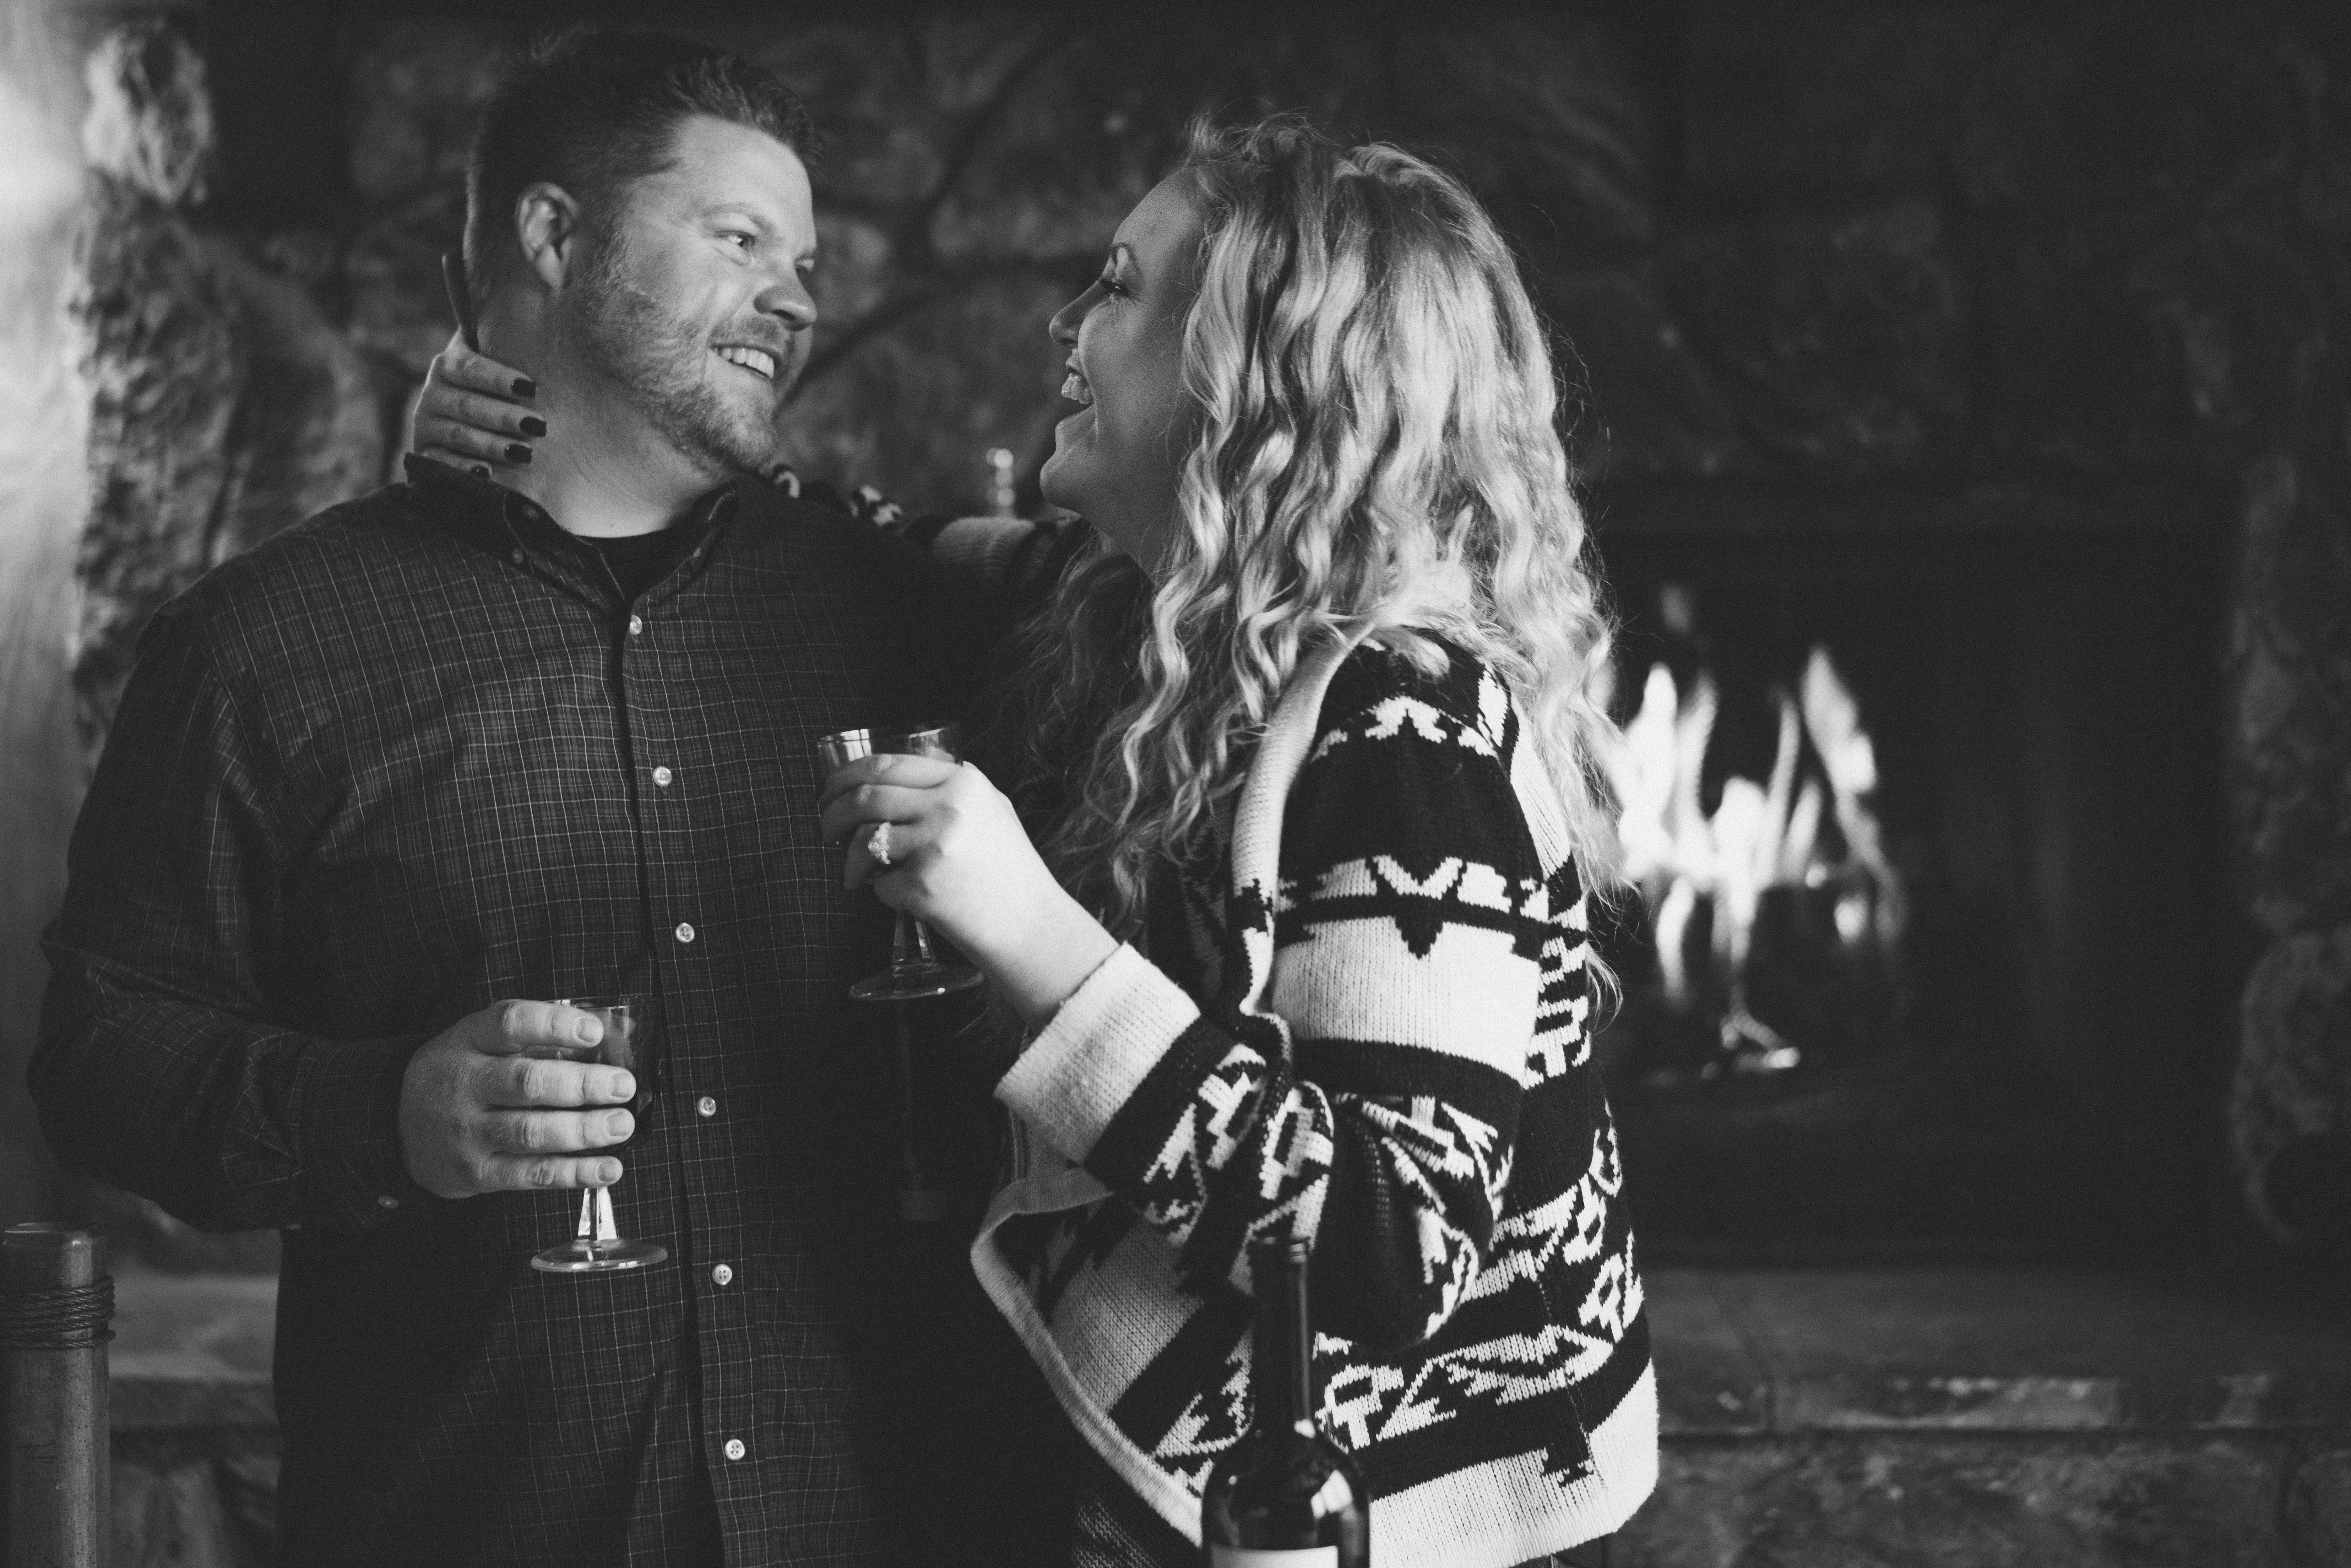 Couple drinking wine in black and white